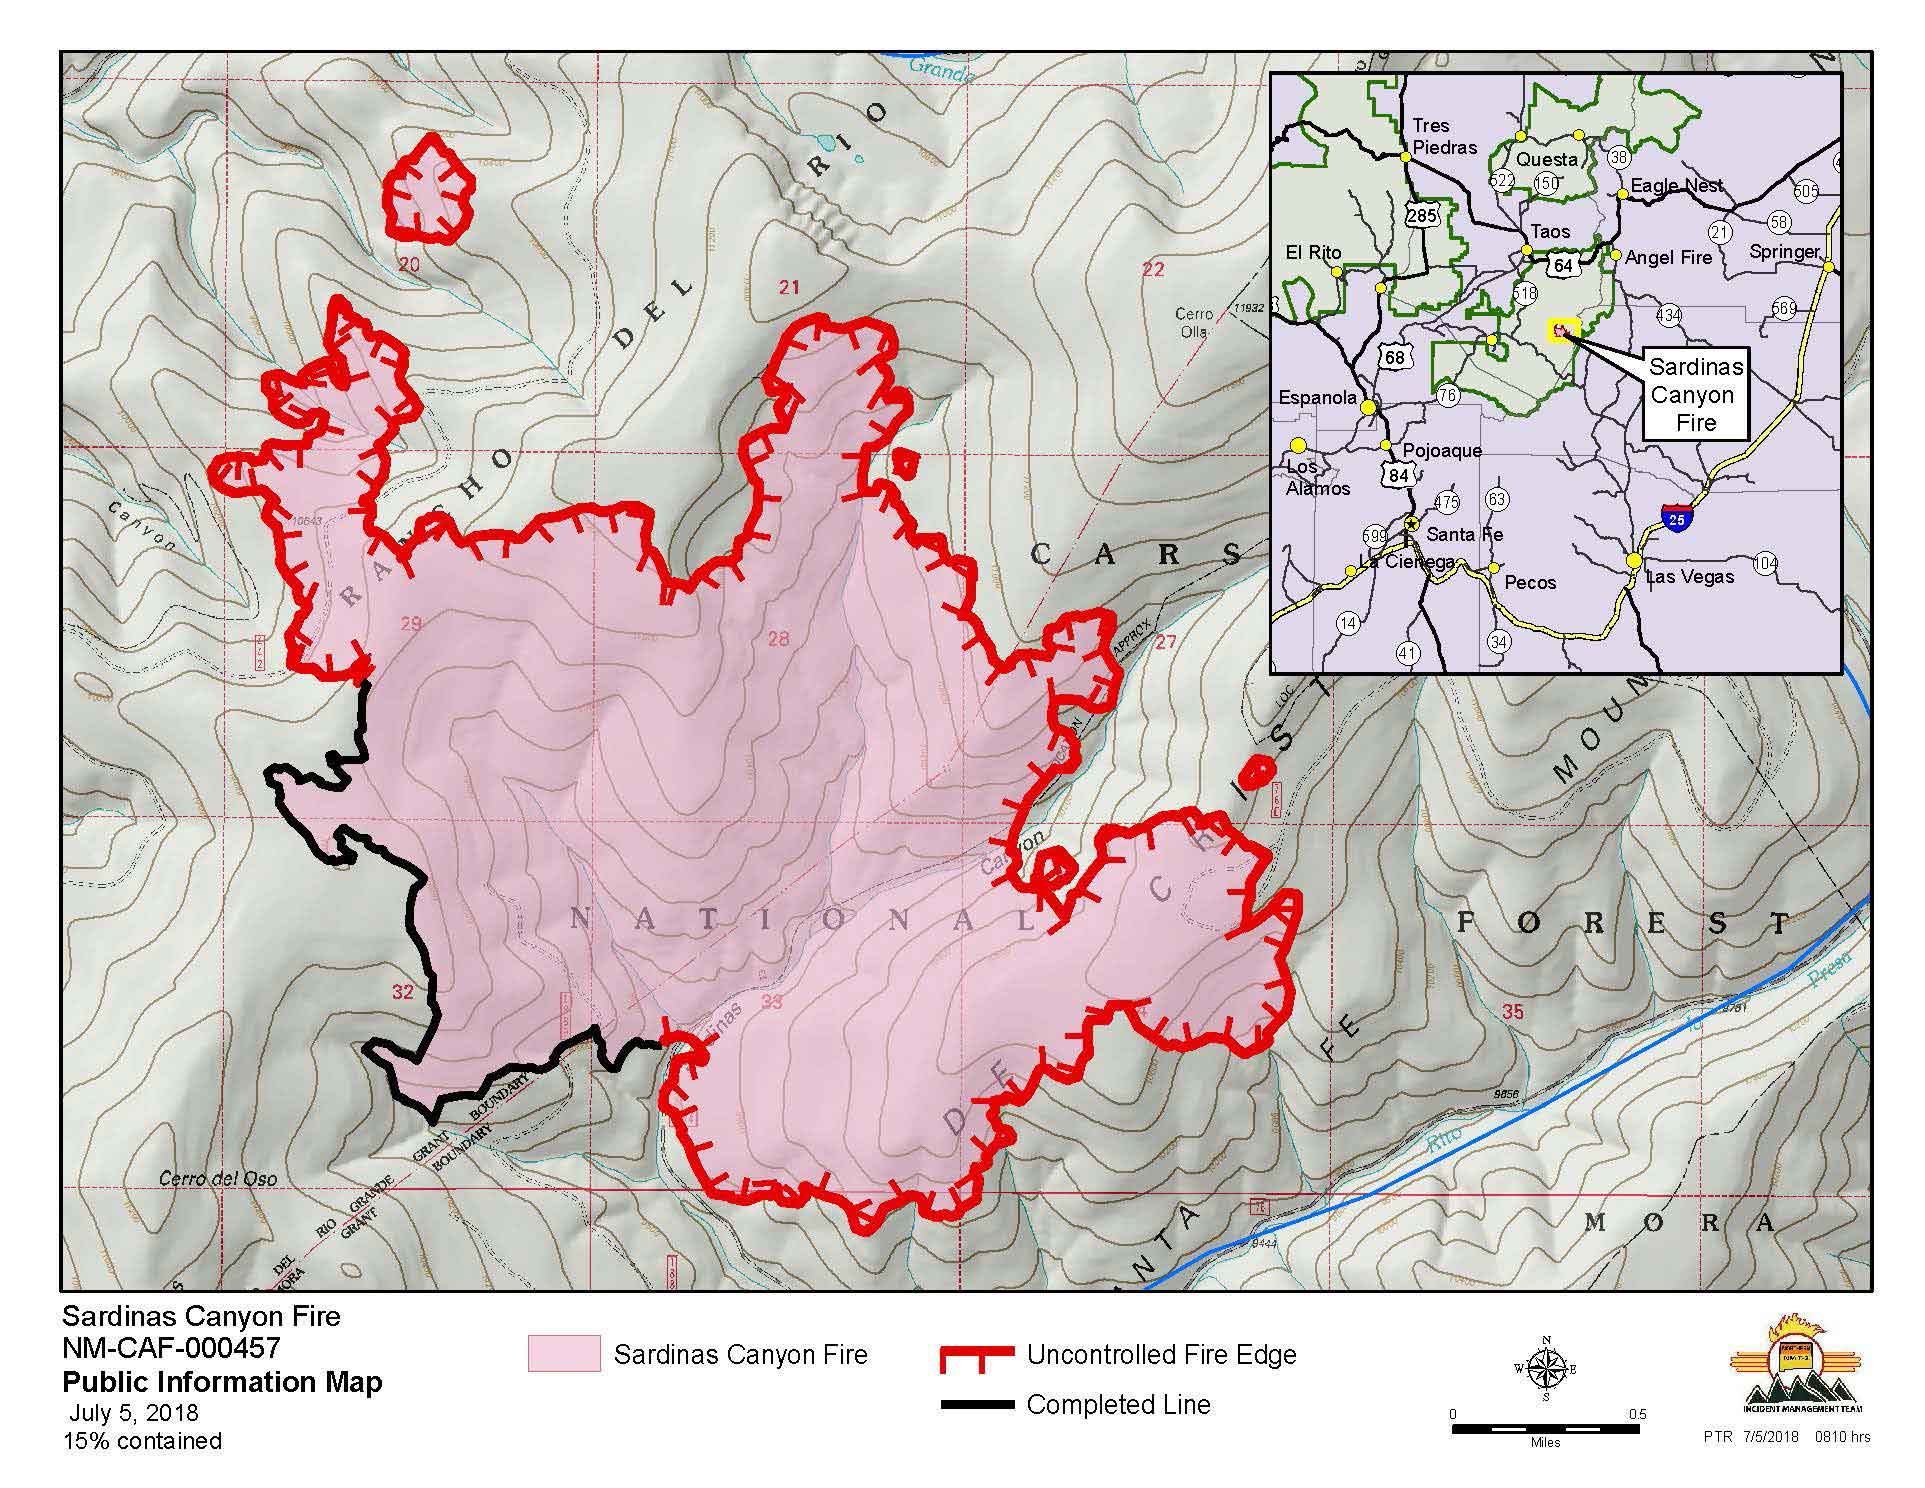 Sardinas Canyon fire map showing containment